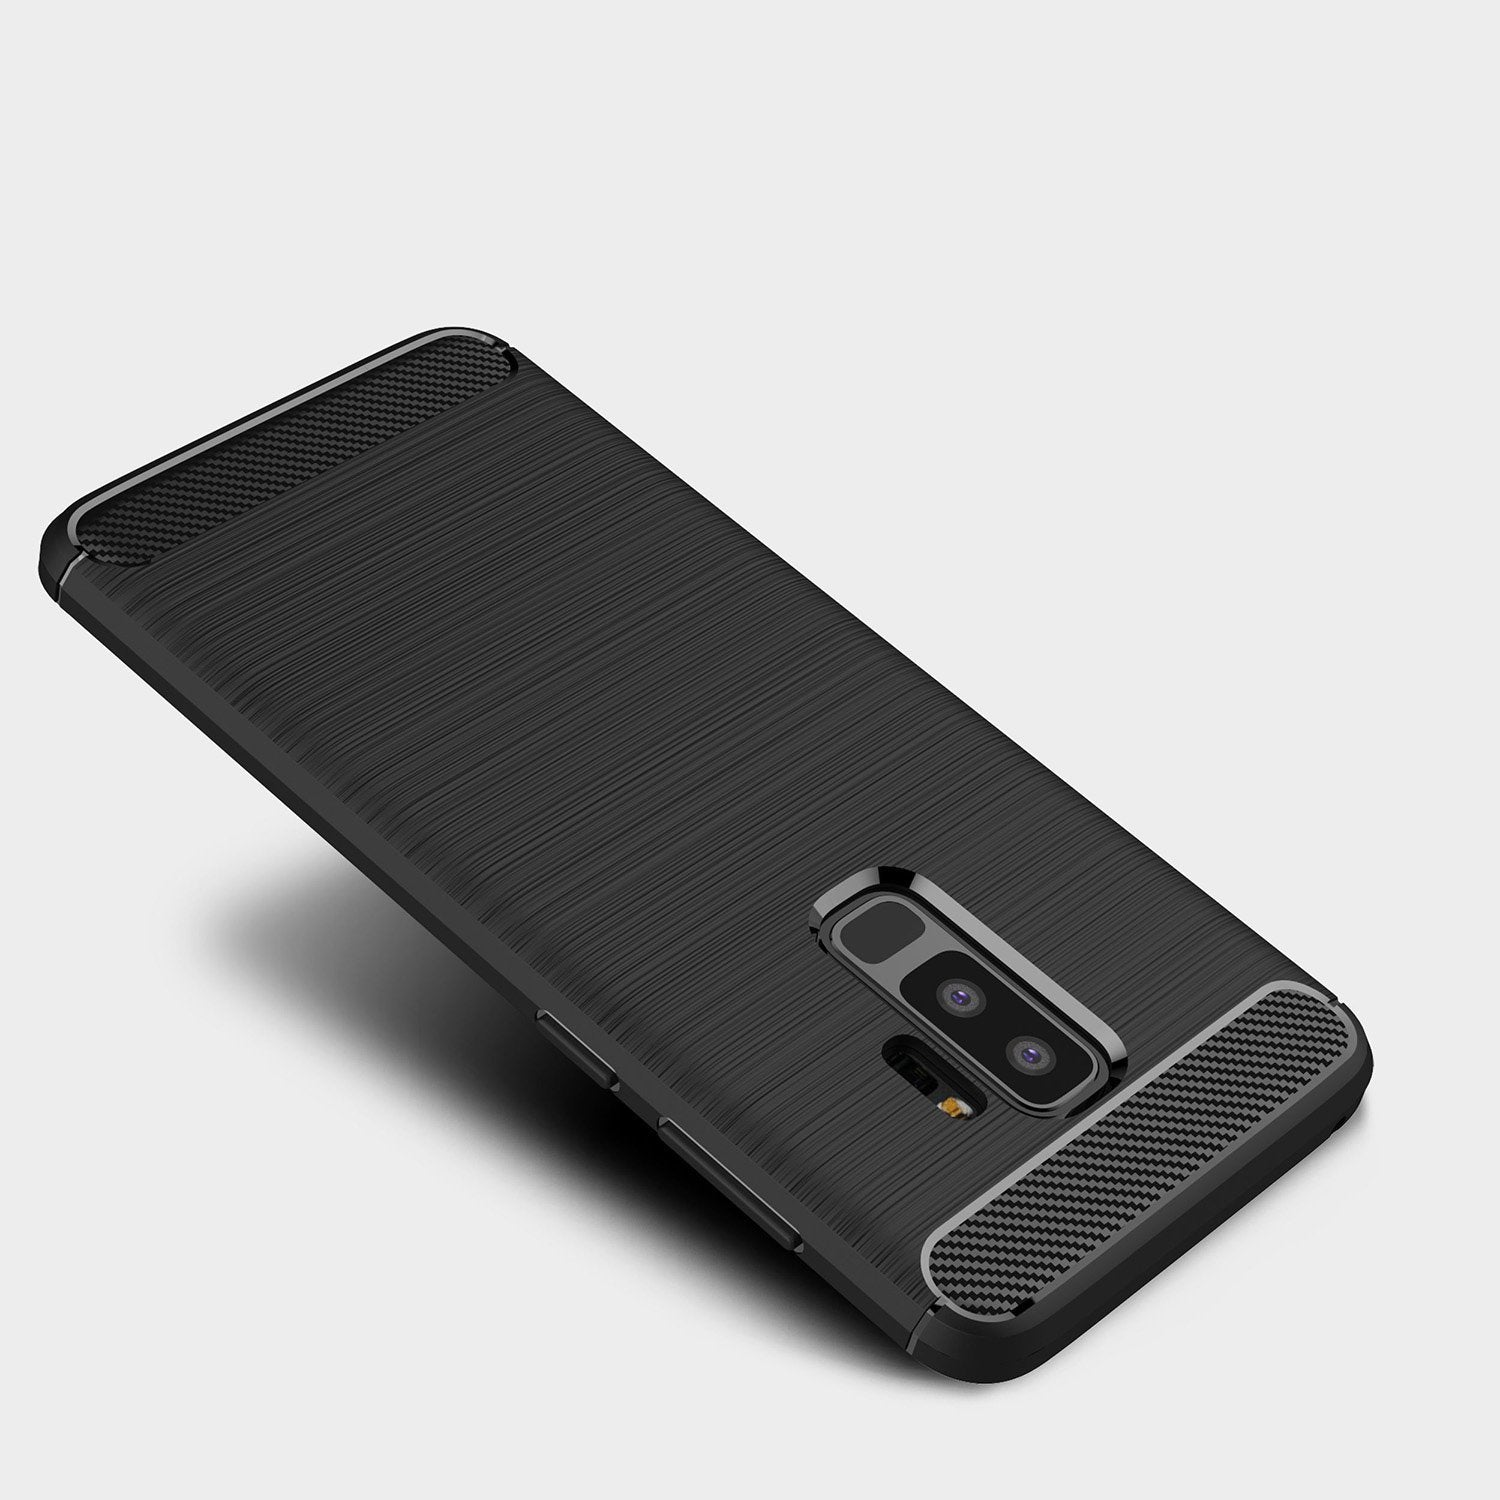 Galaxy S9 Plus Brushed Carbon Fiber Design Case - Happiness Idea